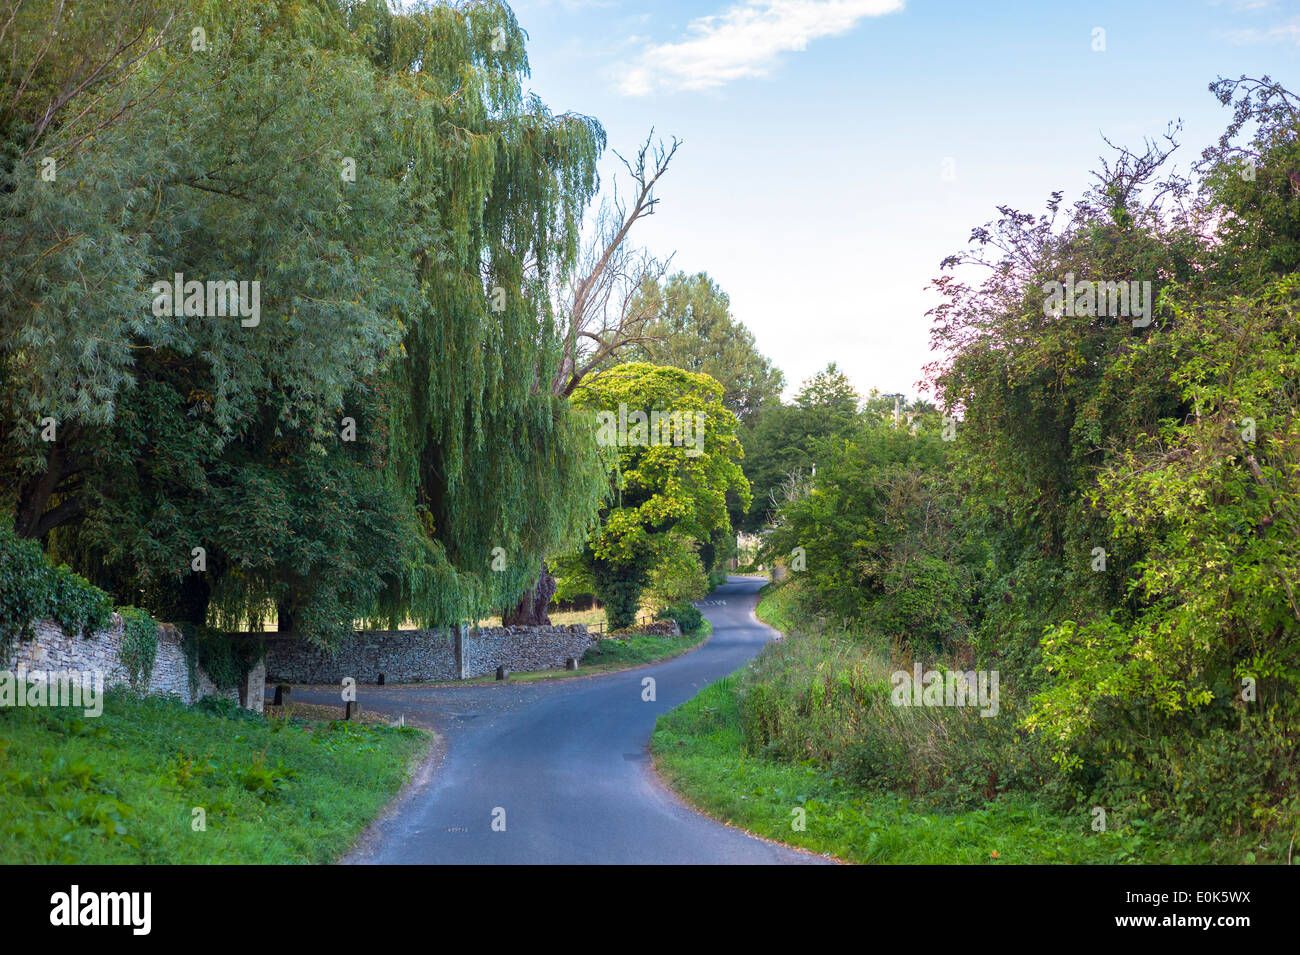 Quiet, deserted winding country lane at Swinbrook in The Cotswolds, Oxfordshire, UK - Stock Image